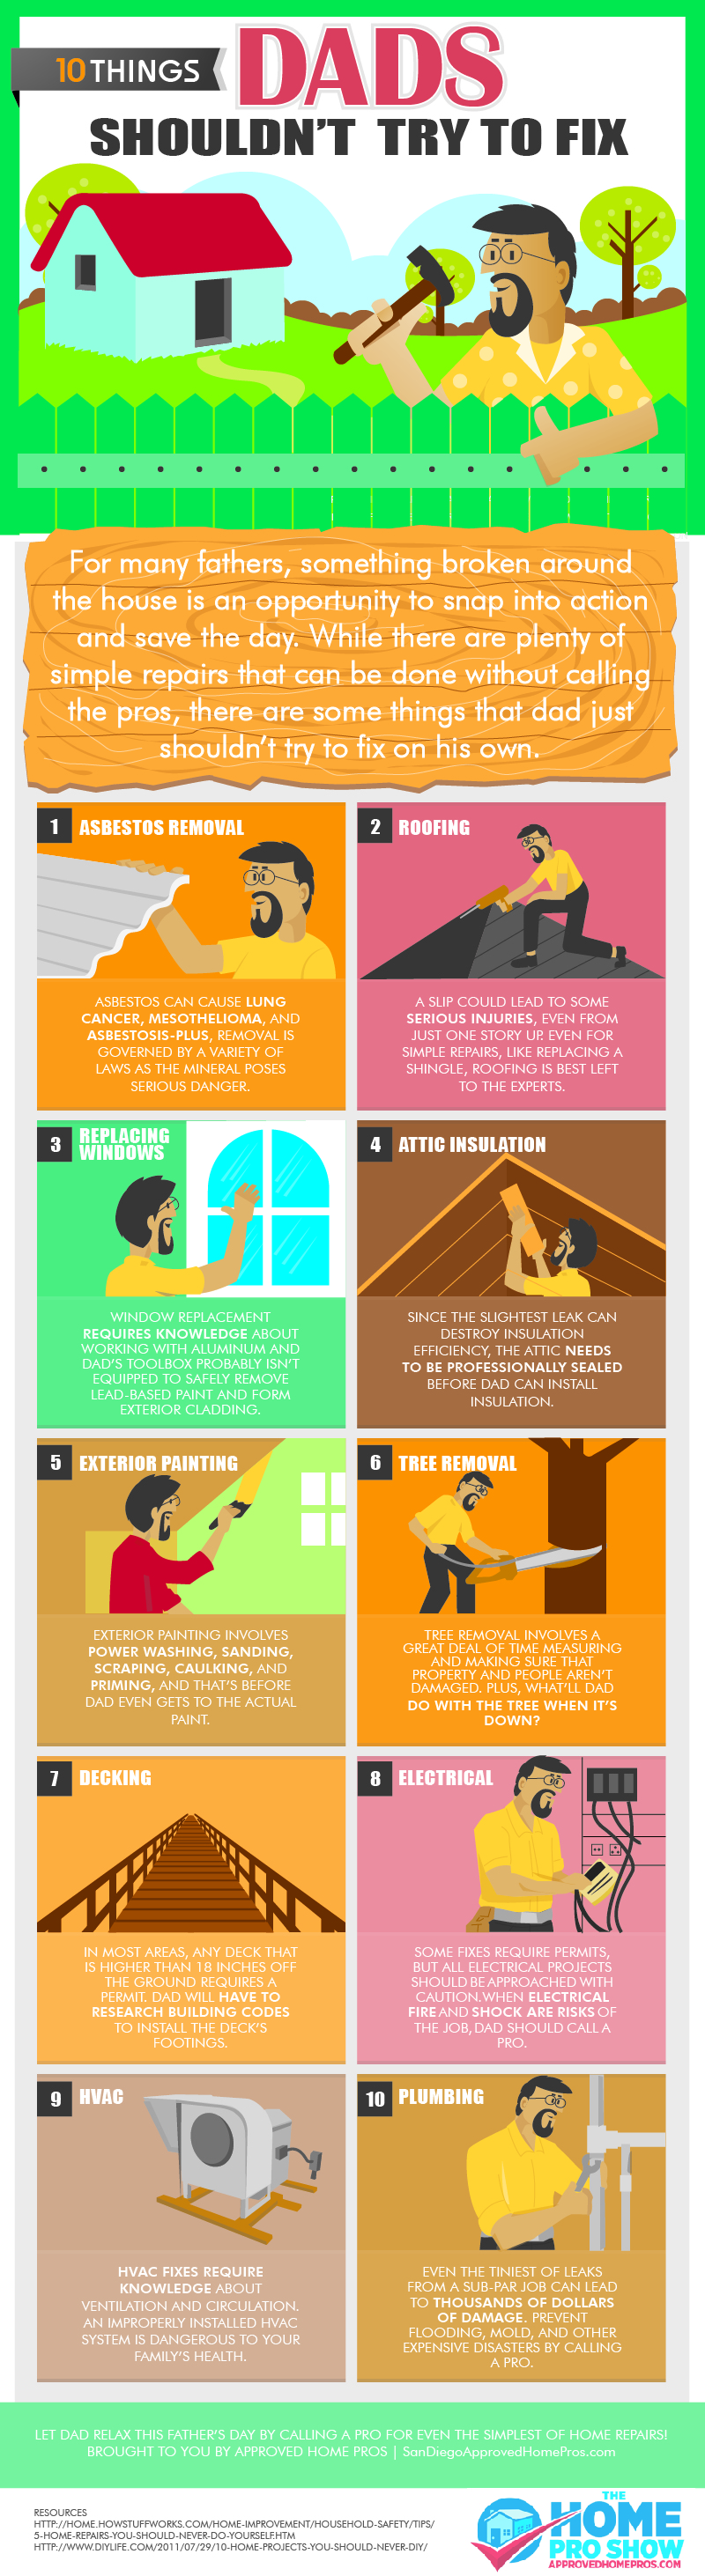 10 Things Dads Shouldn't Try to Fix Infographic